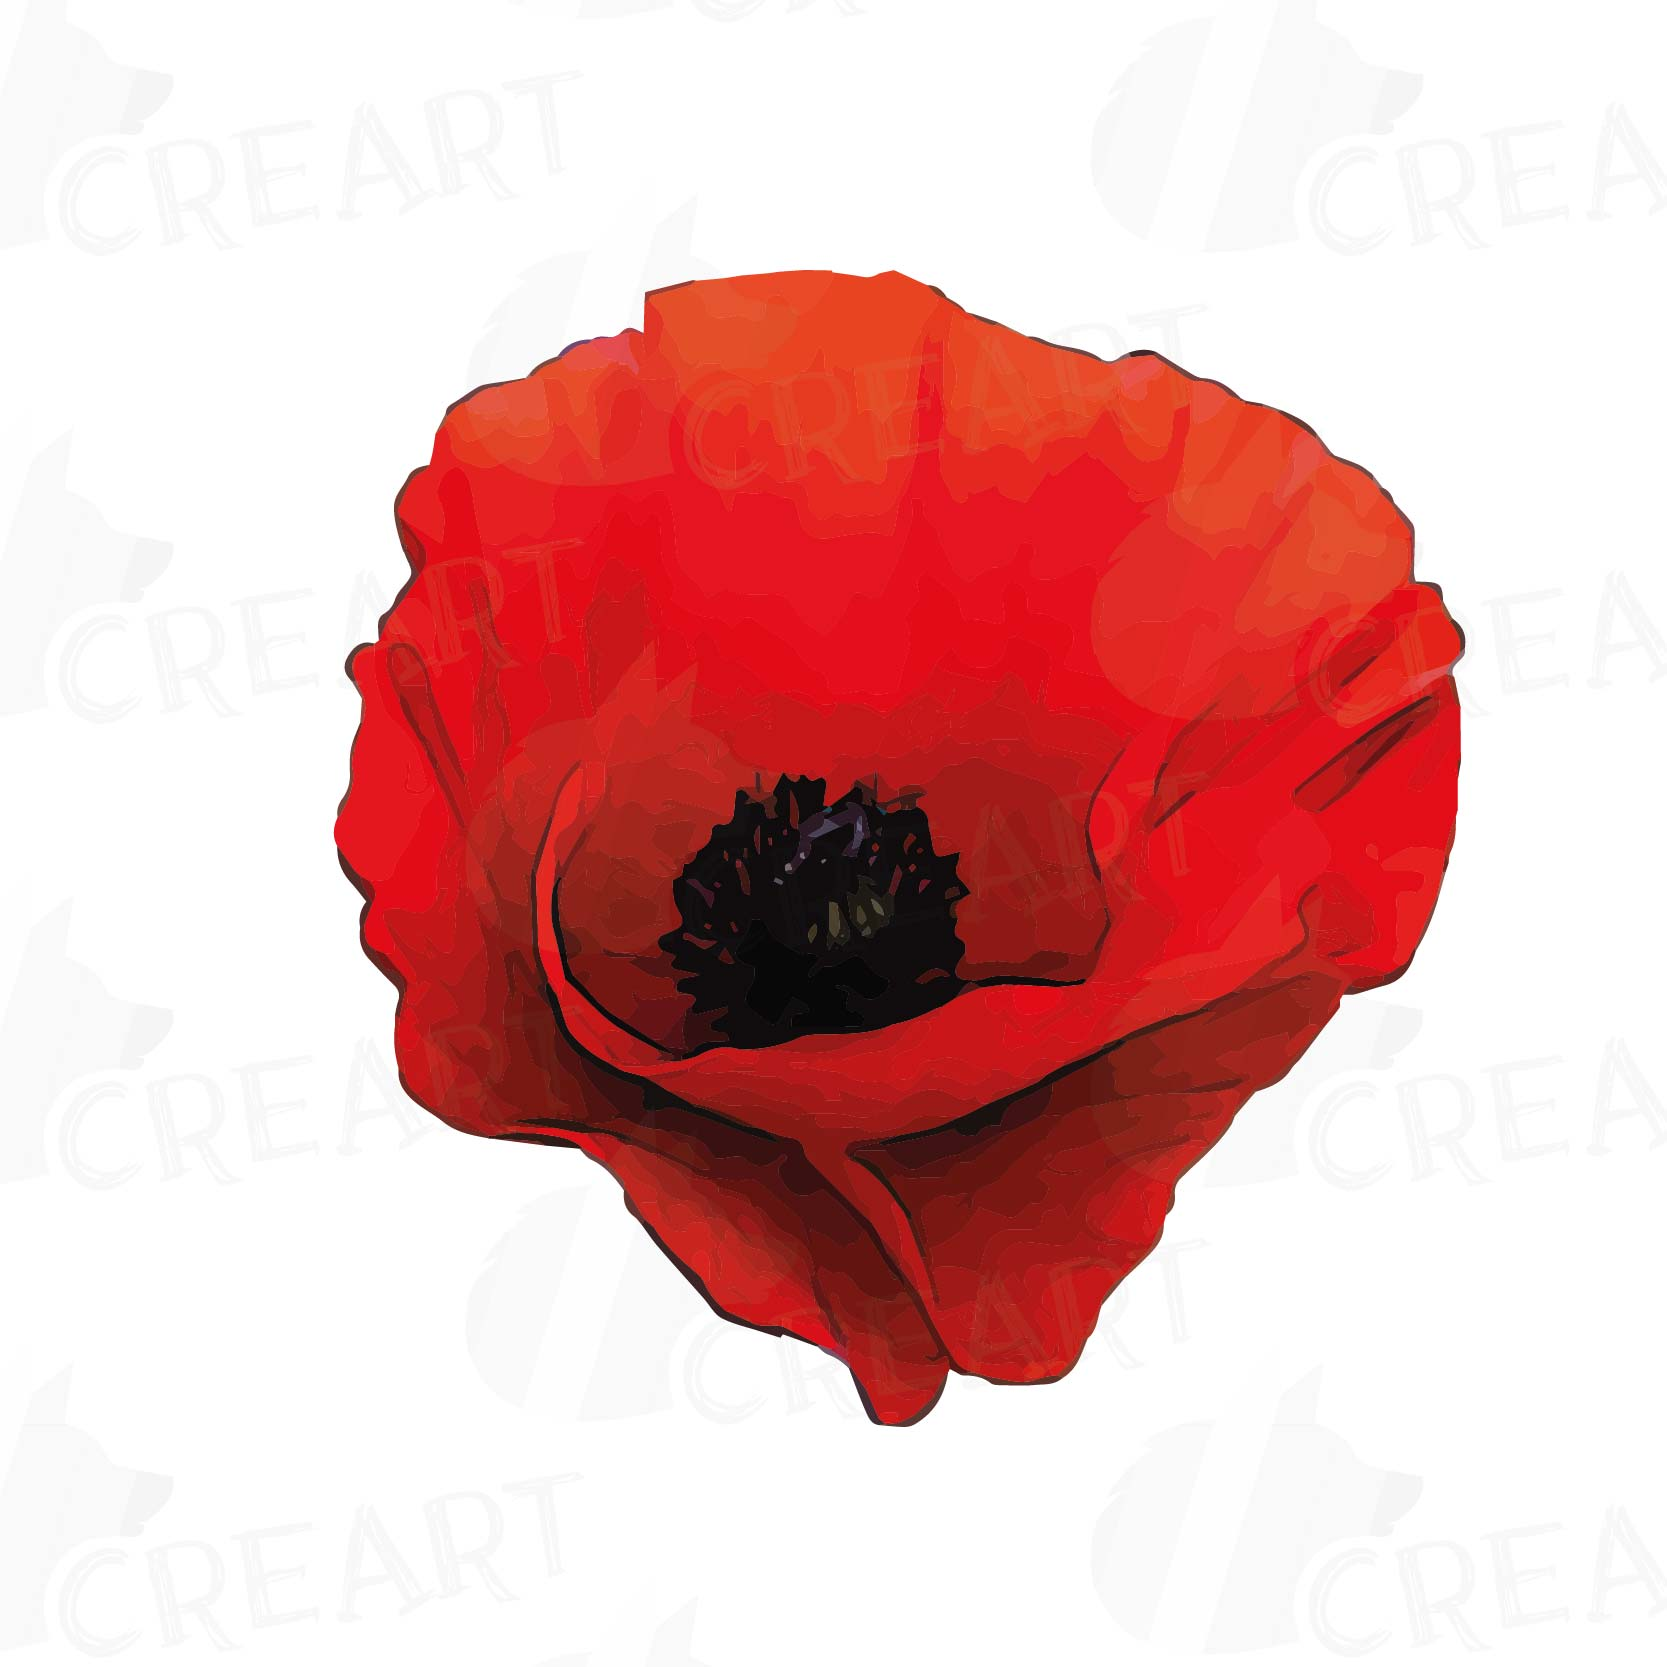 Watercolor Red Poppy flower and leaf clip art pack, Poppies clip art. PNG,  jpg, svg, vector illustrator & corel files included.